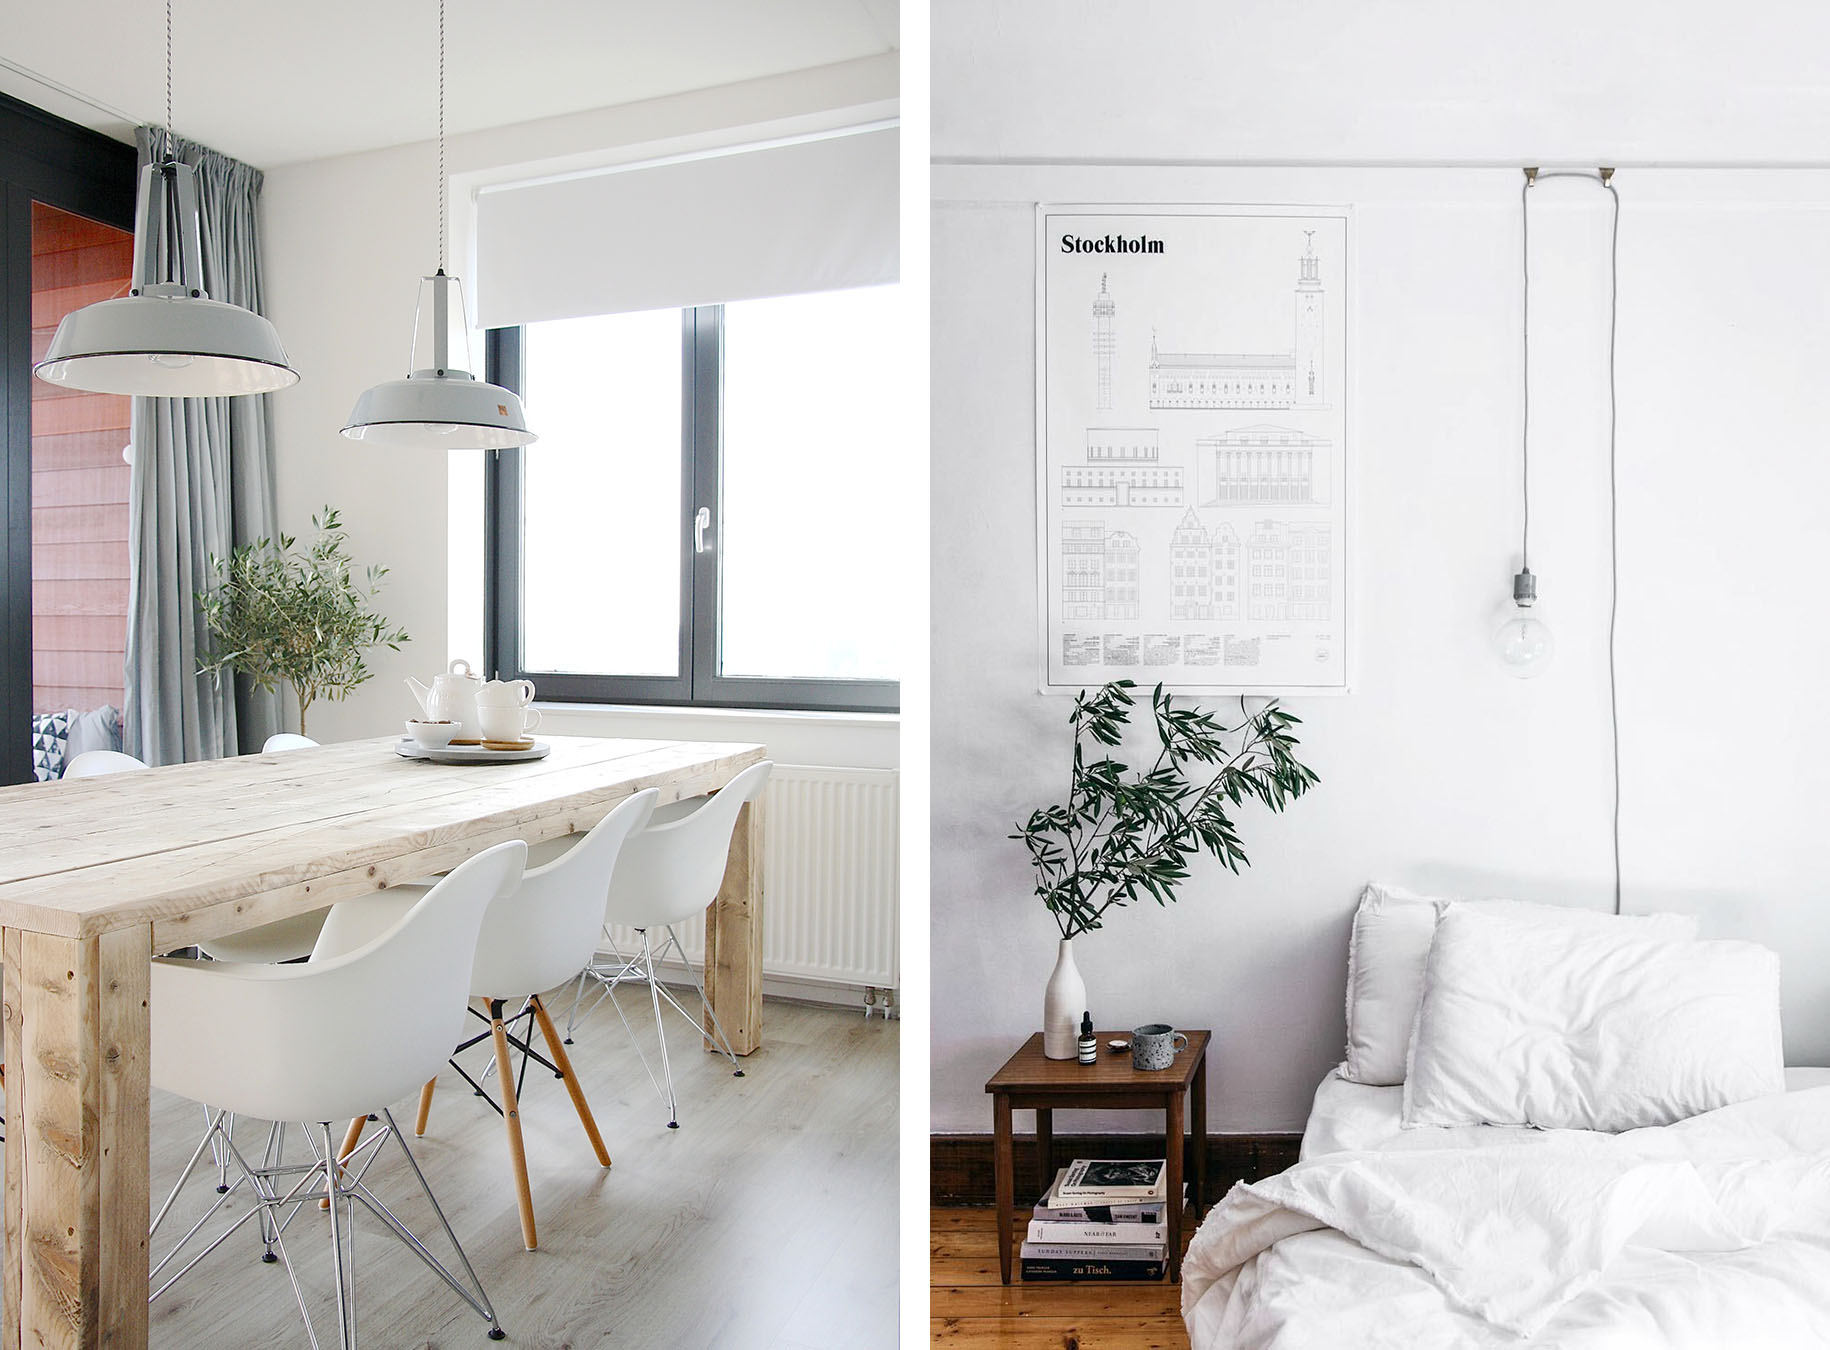 Scandinavian interior lighting with pendant lamps and hanging lightbulbs - Top 10 tips for adding Scandinavian style to your home | Happy Grey Lucky